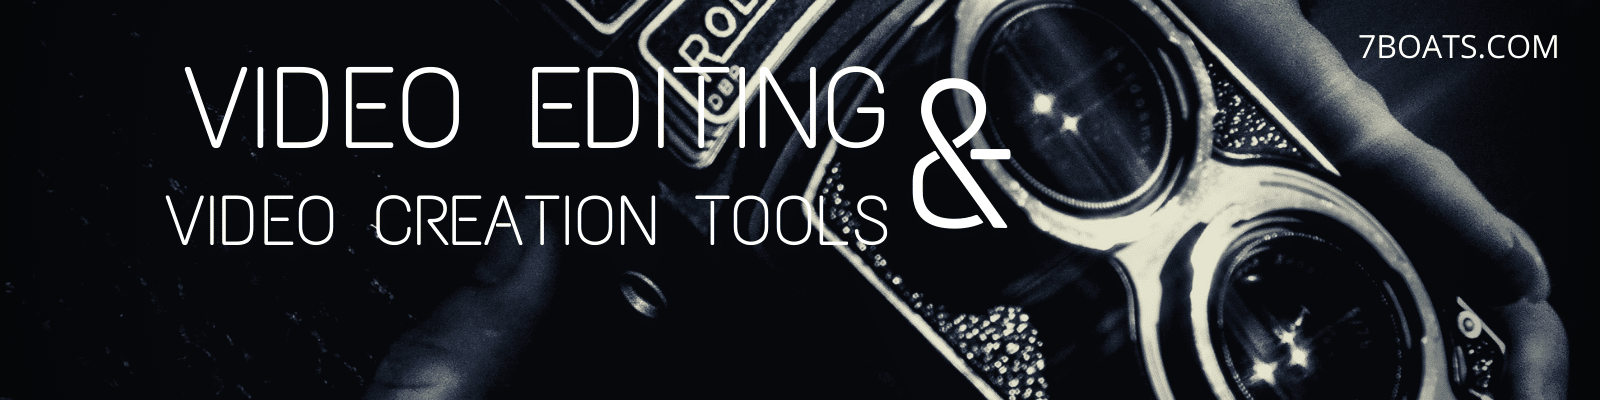 Video Editing Tools & Video Creation Tools